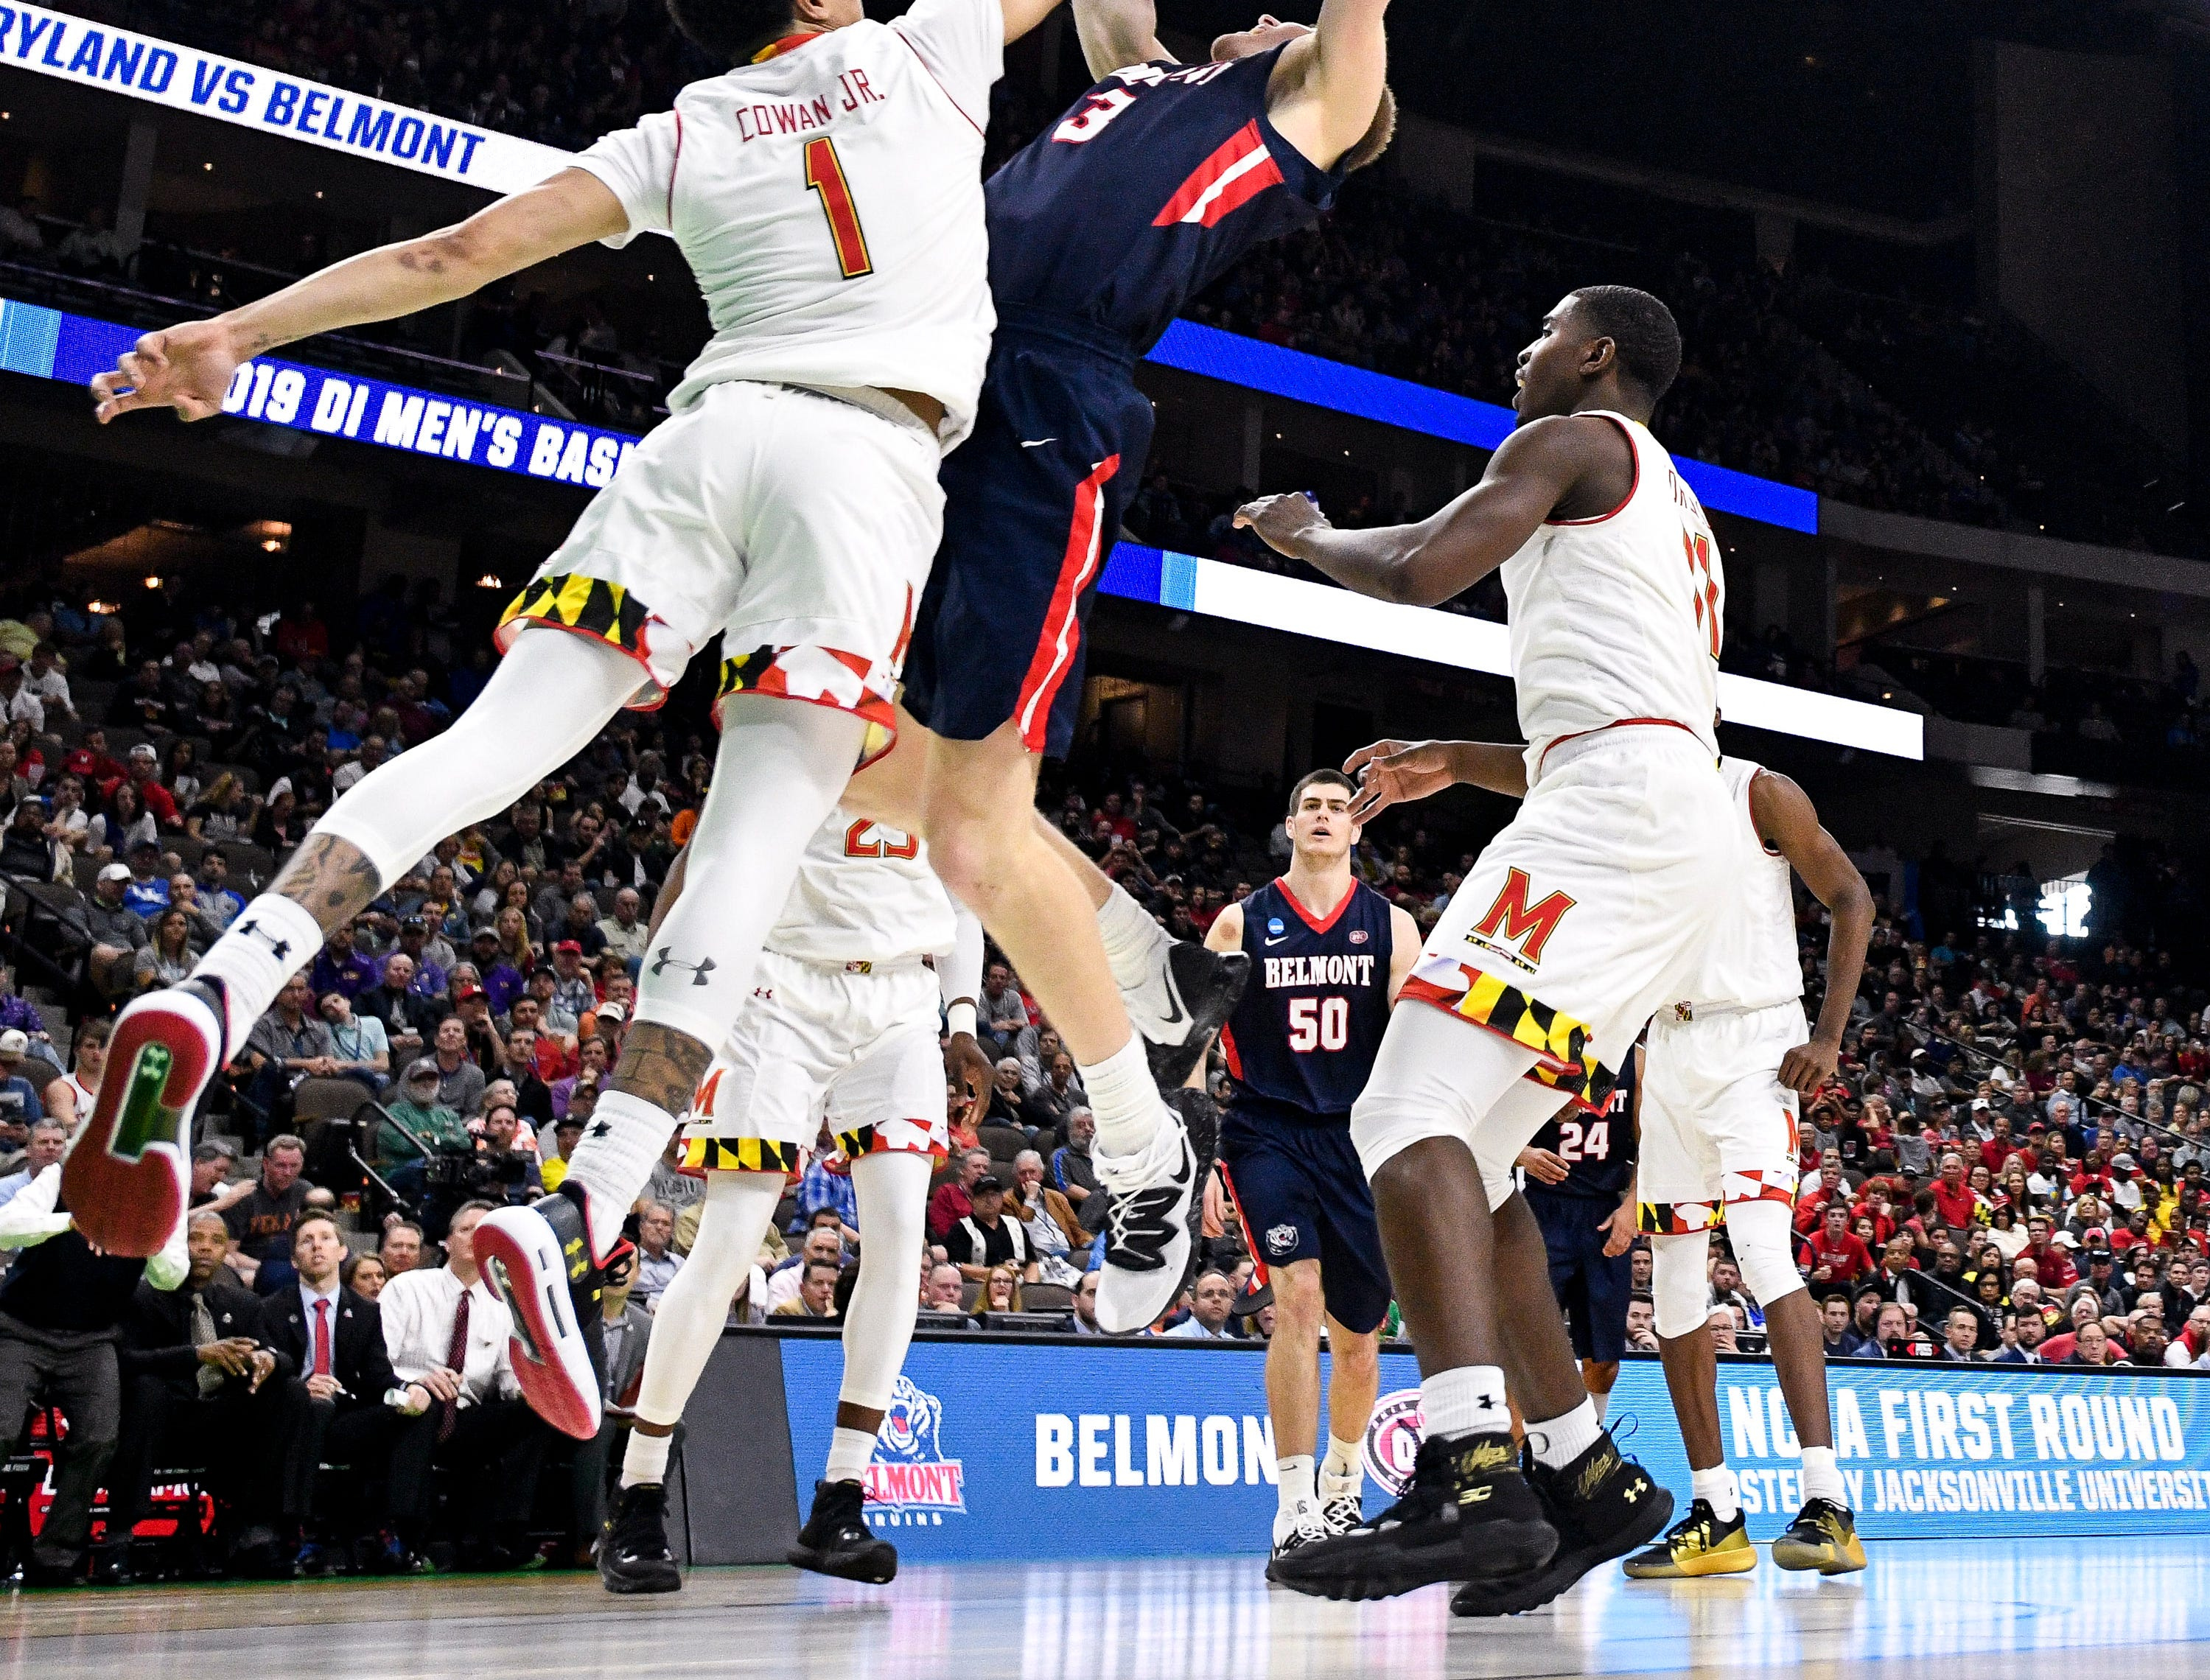 Maryland guard Anthony Cowan Jr. (1) defends against Belmont guard/forward Dylan Windler (3) during the second half of the first-round NCAA college basketball tournament game at VyStar Veterans Memorial Arena in Jacksonville, Fla., Thursday, March 21, 2019.